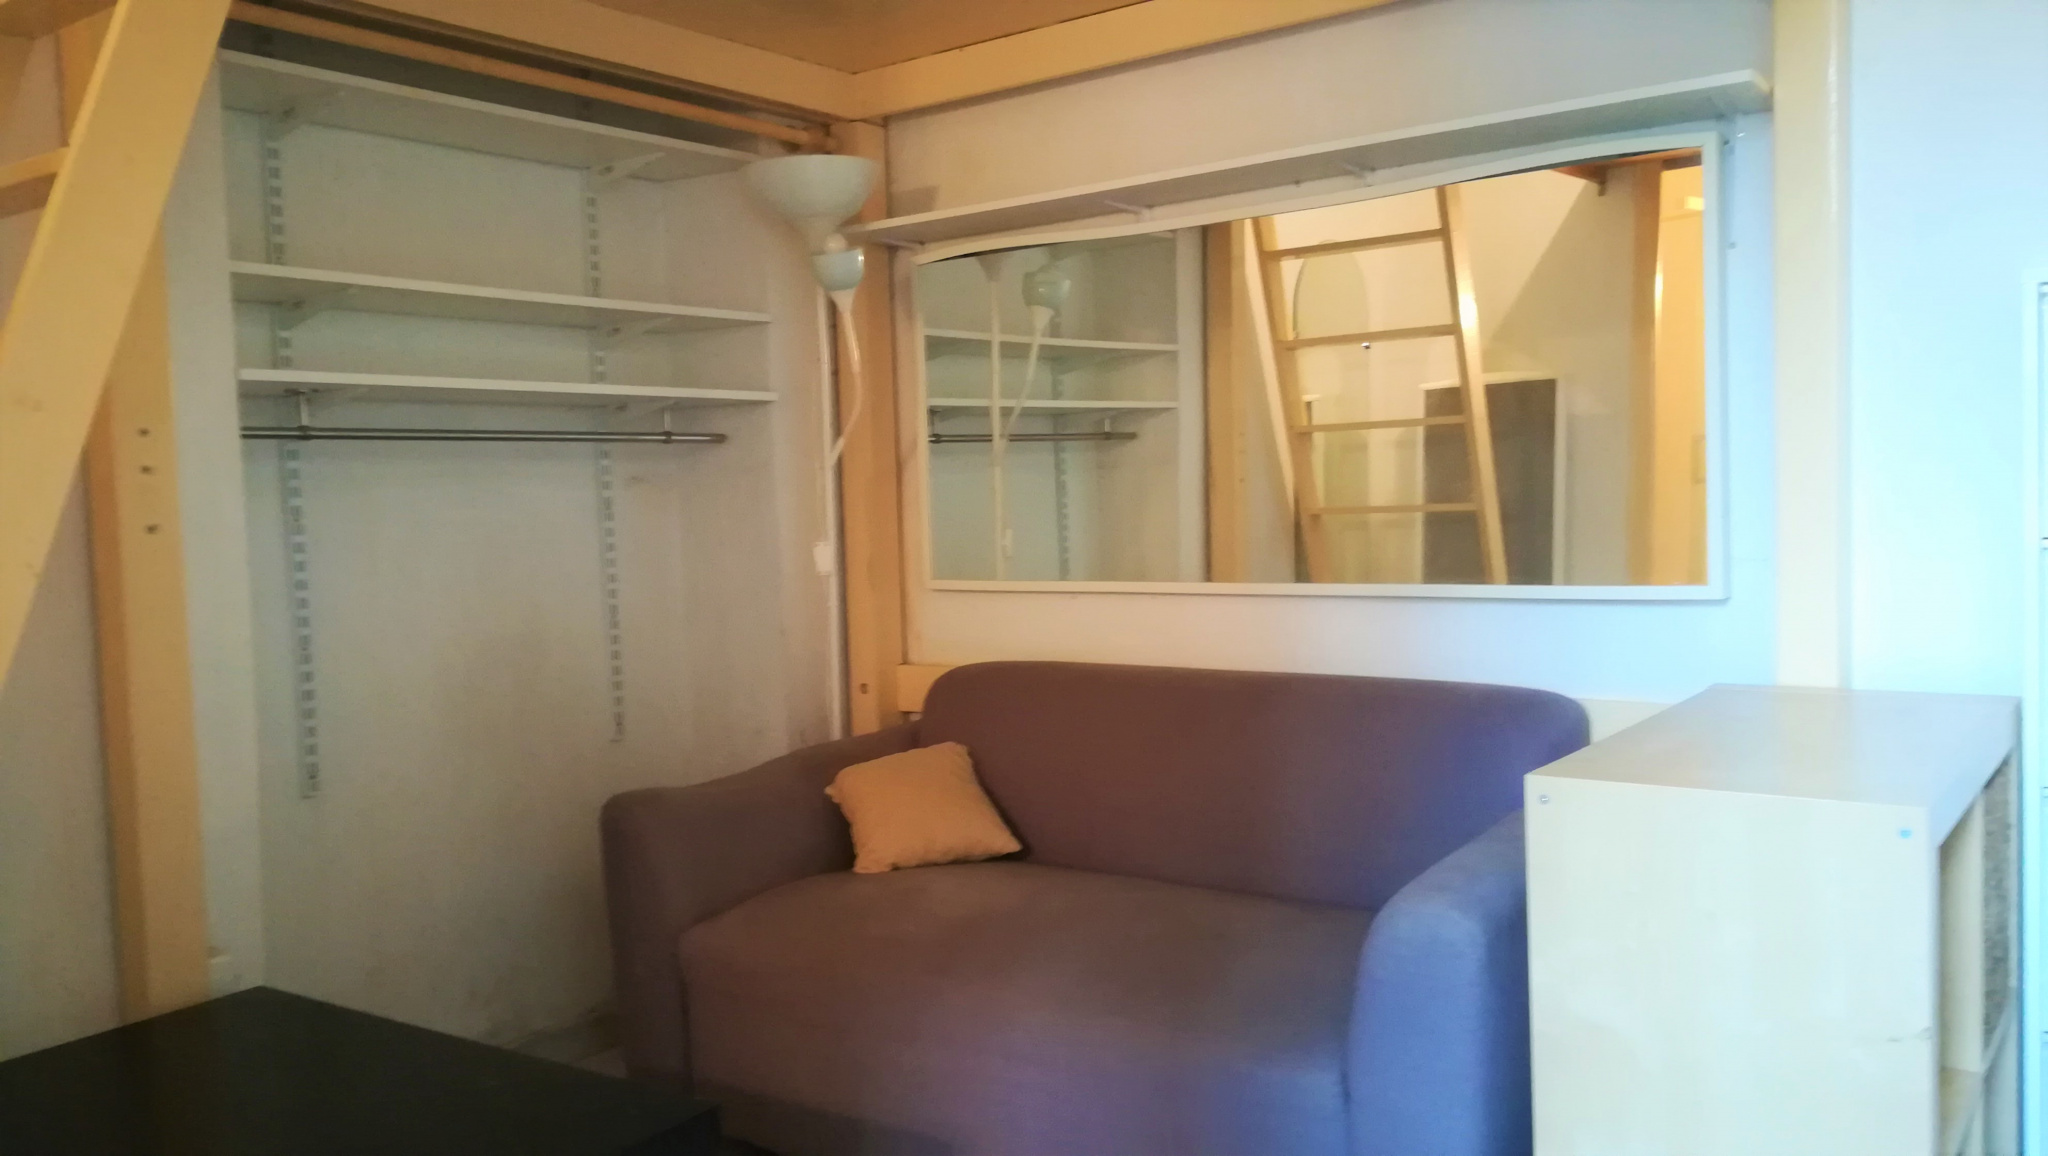 Vente appartement dijon tram, bus, gare TGV